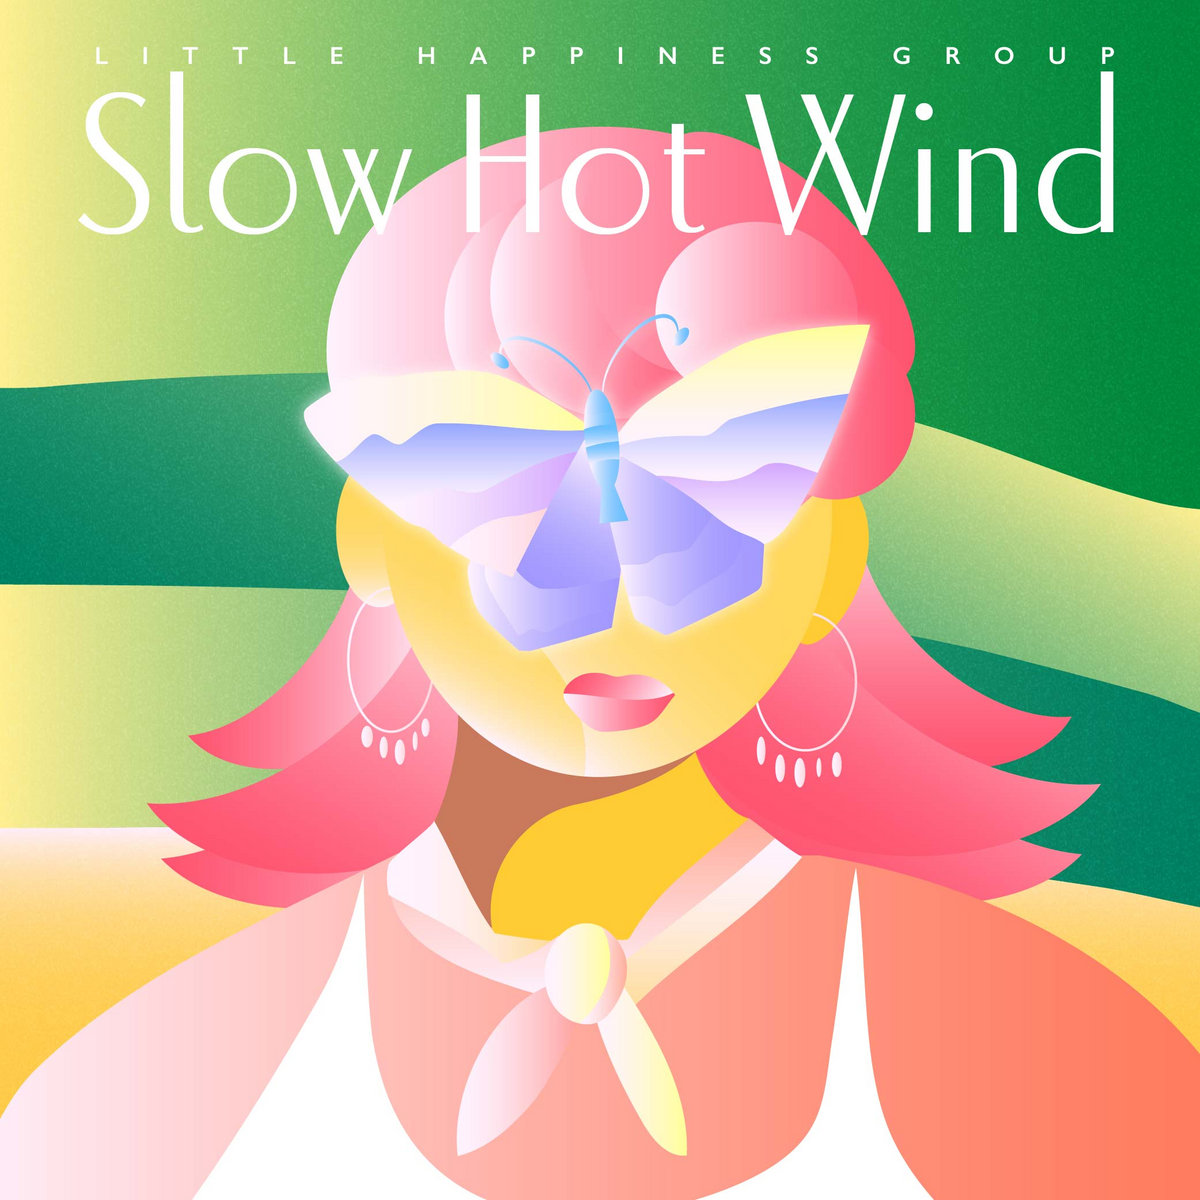 Slow Hot Wind | Little Happiness Group